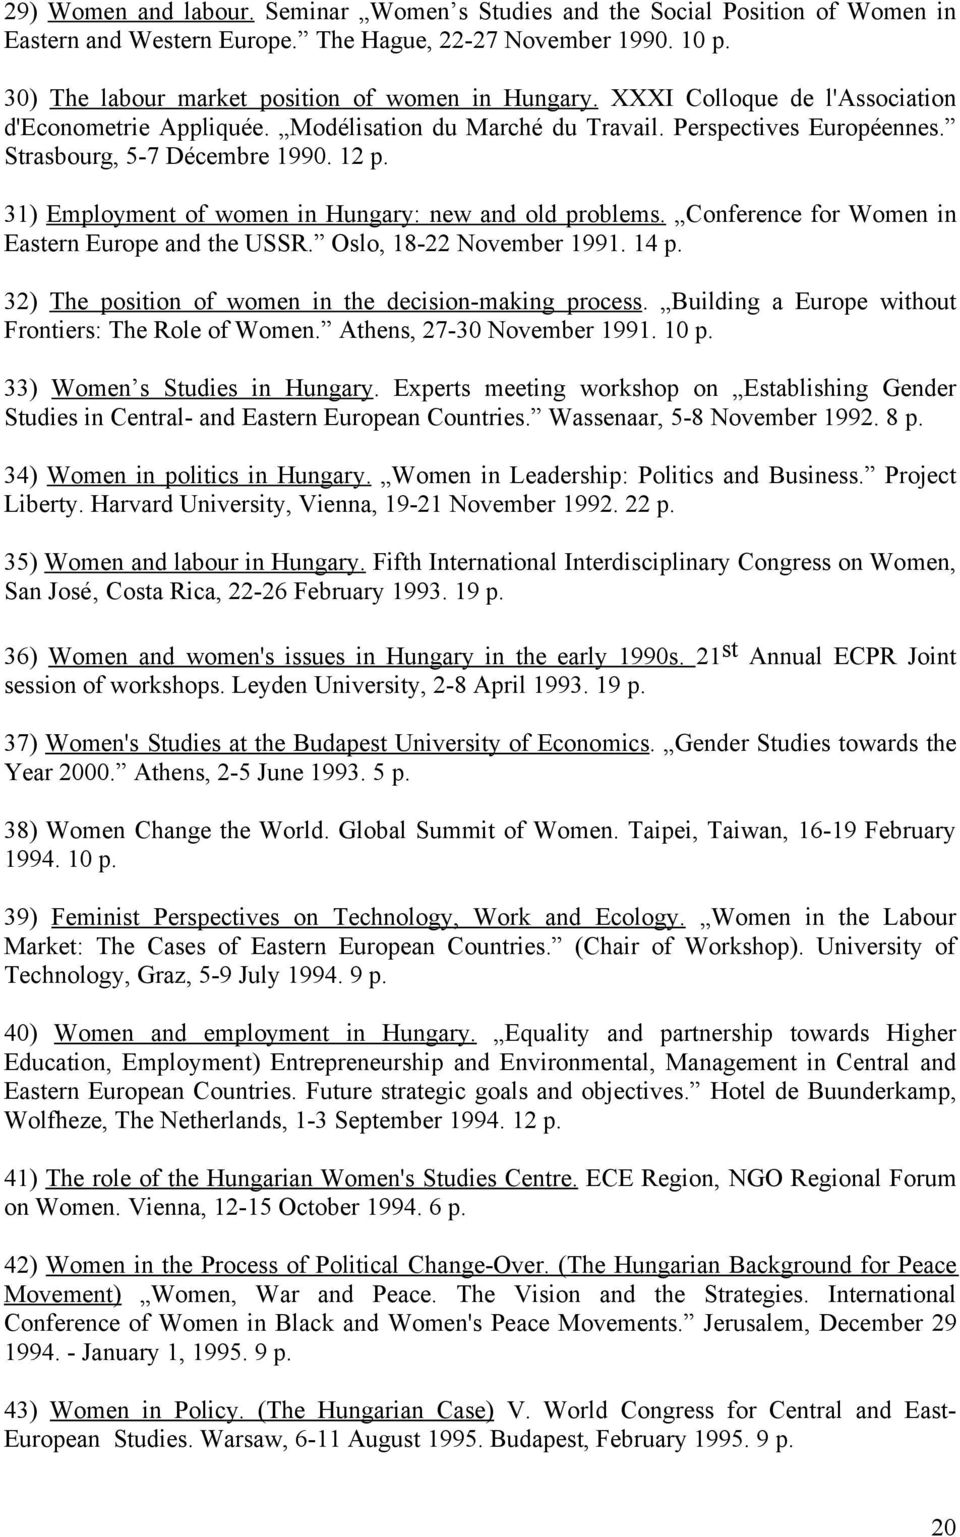 31) Employment of women in Hungary: new and old problems. Conference for Women in Eastern Europe and the USSR. Oslo, 18-22 November 1991. 14 p.